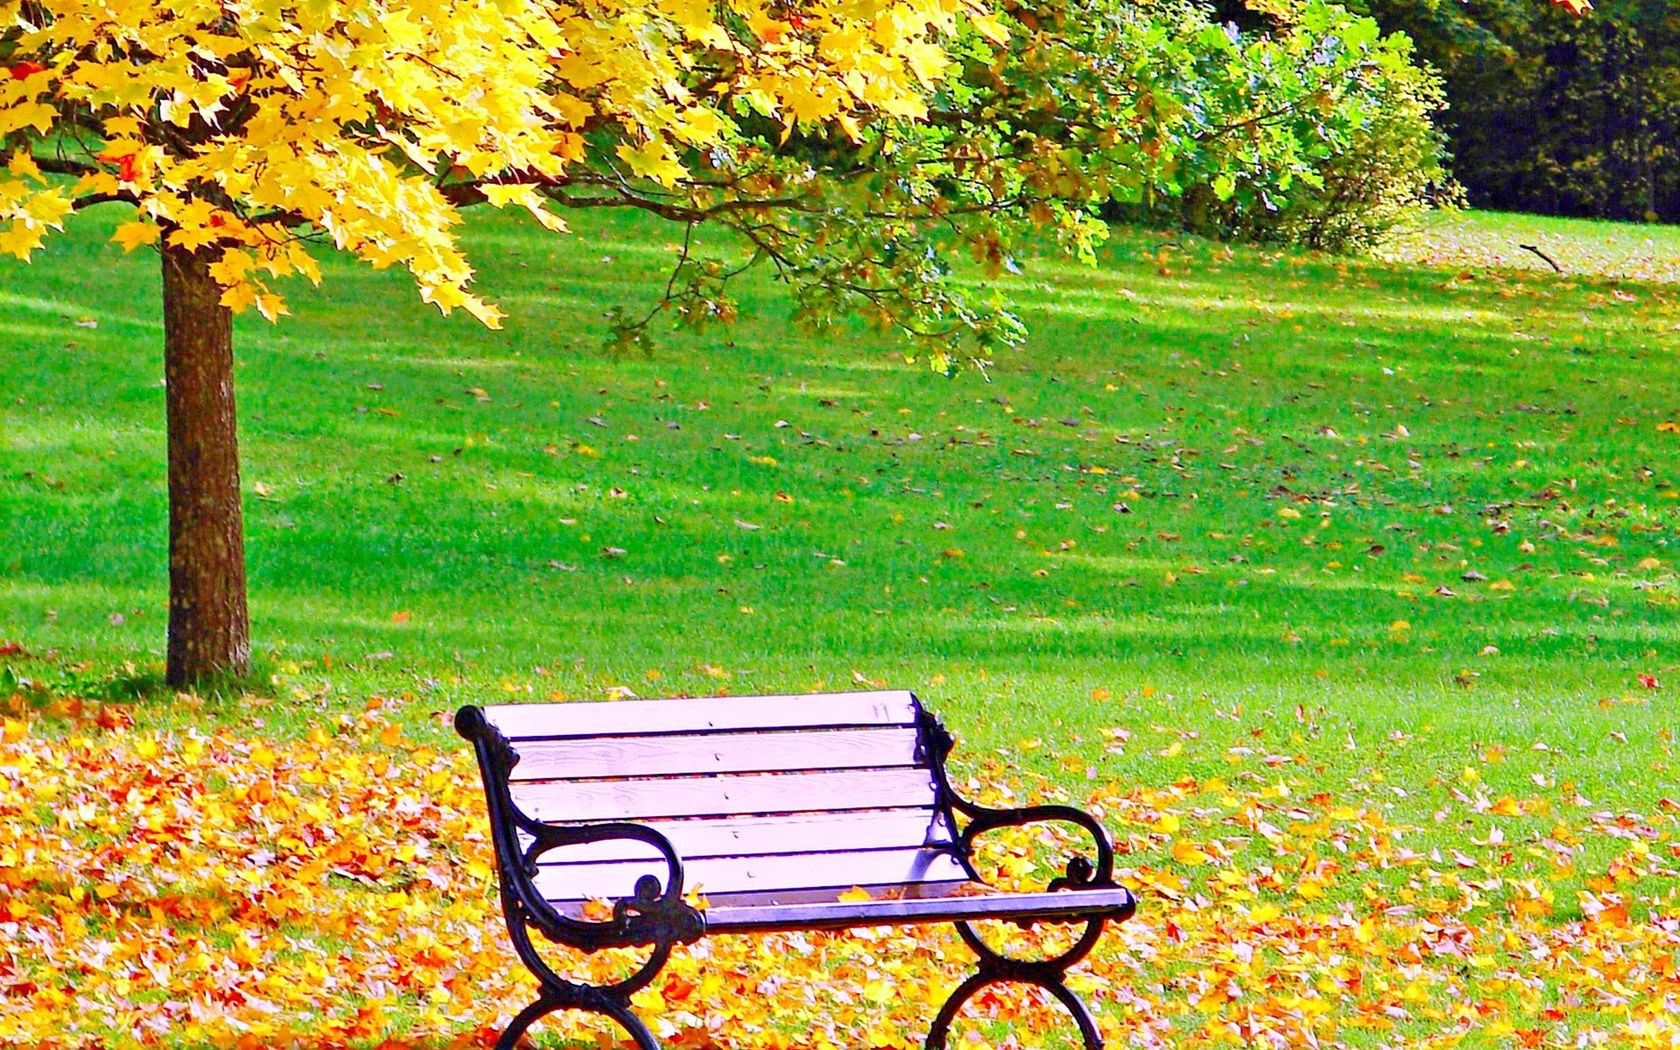 autumn fall bench leaf park nature season garden tree wood grass landscape maple outside color outdoors scene summer lawn flower